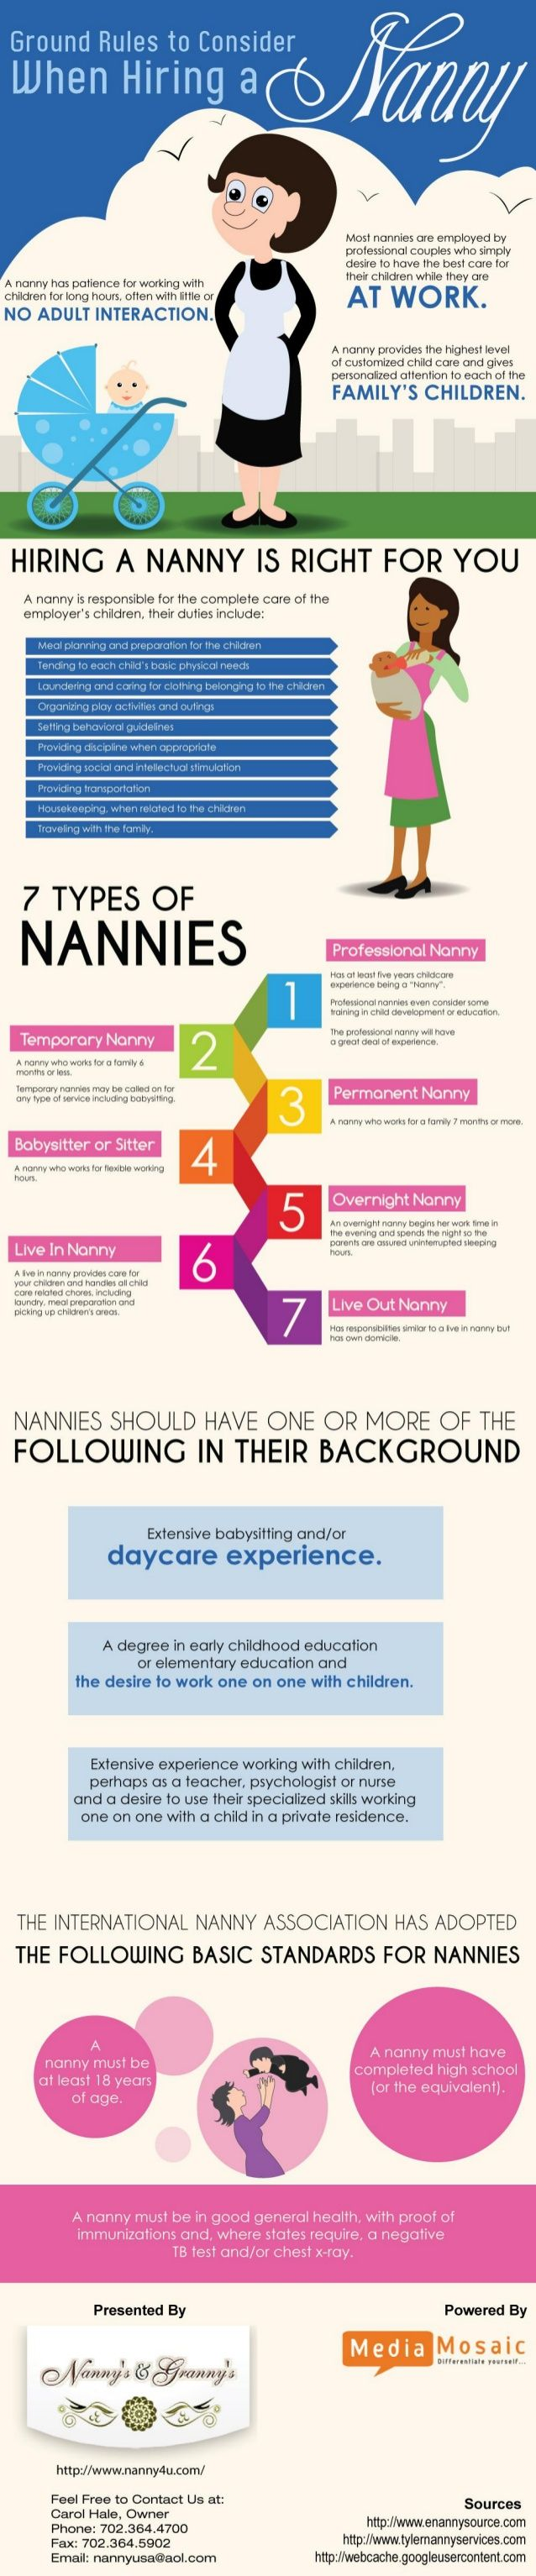 best ideas about babysitters babysitter nanny s granny s presents wonderful infographic titled ground rules to consider when hiring a nanny which is created the big idea of showing key